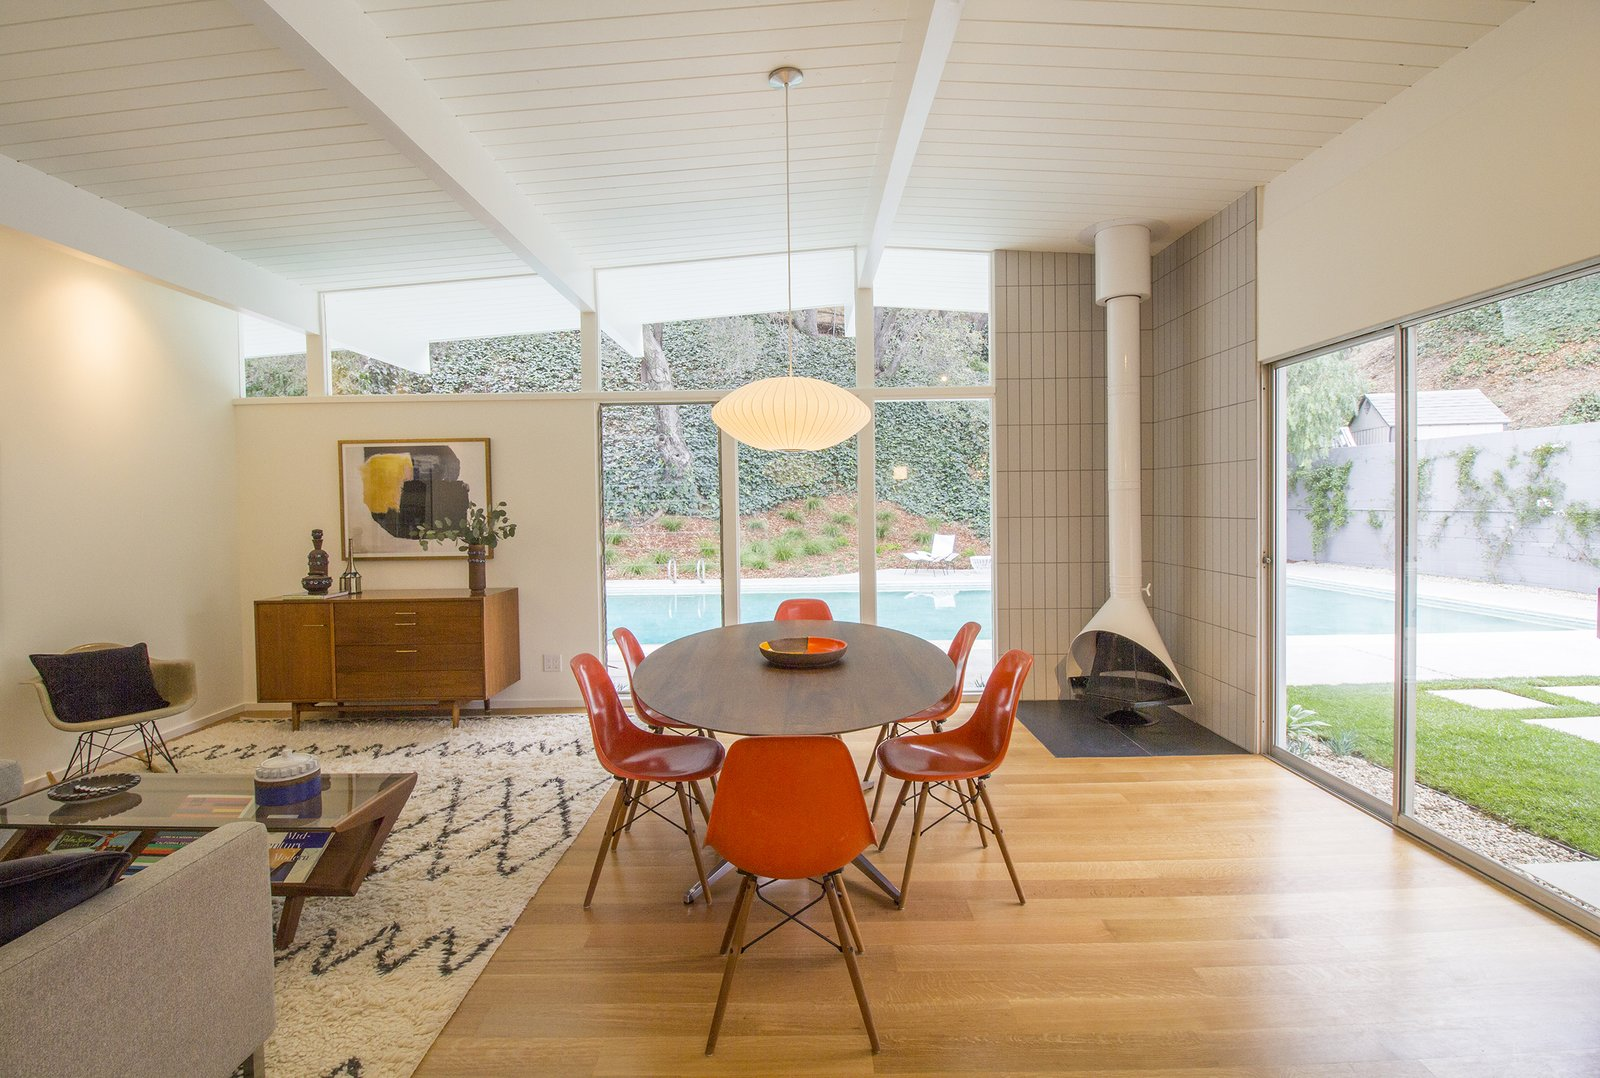 Dining, Chair, Pendant, Medium Hardwood, Corner, Table, Storage, and Rug The open-plan living and dining area connects to  an outdoor patio and the pool.  Best Dining Rug Corner Photos from A Meticulously Updated Midcentury in L.A. Asks $1.49M